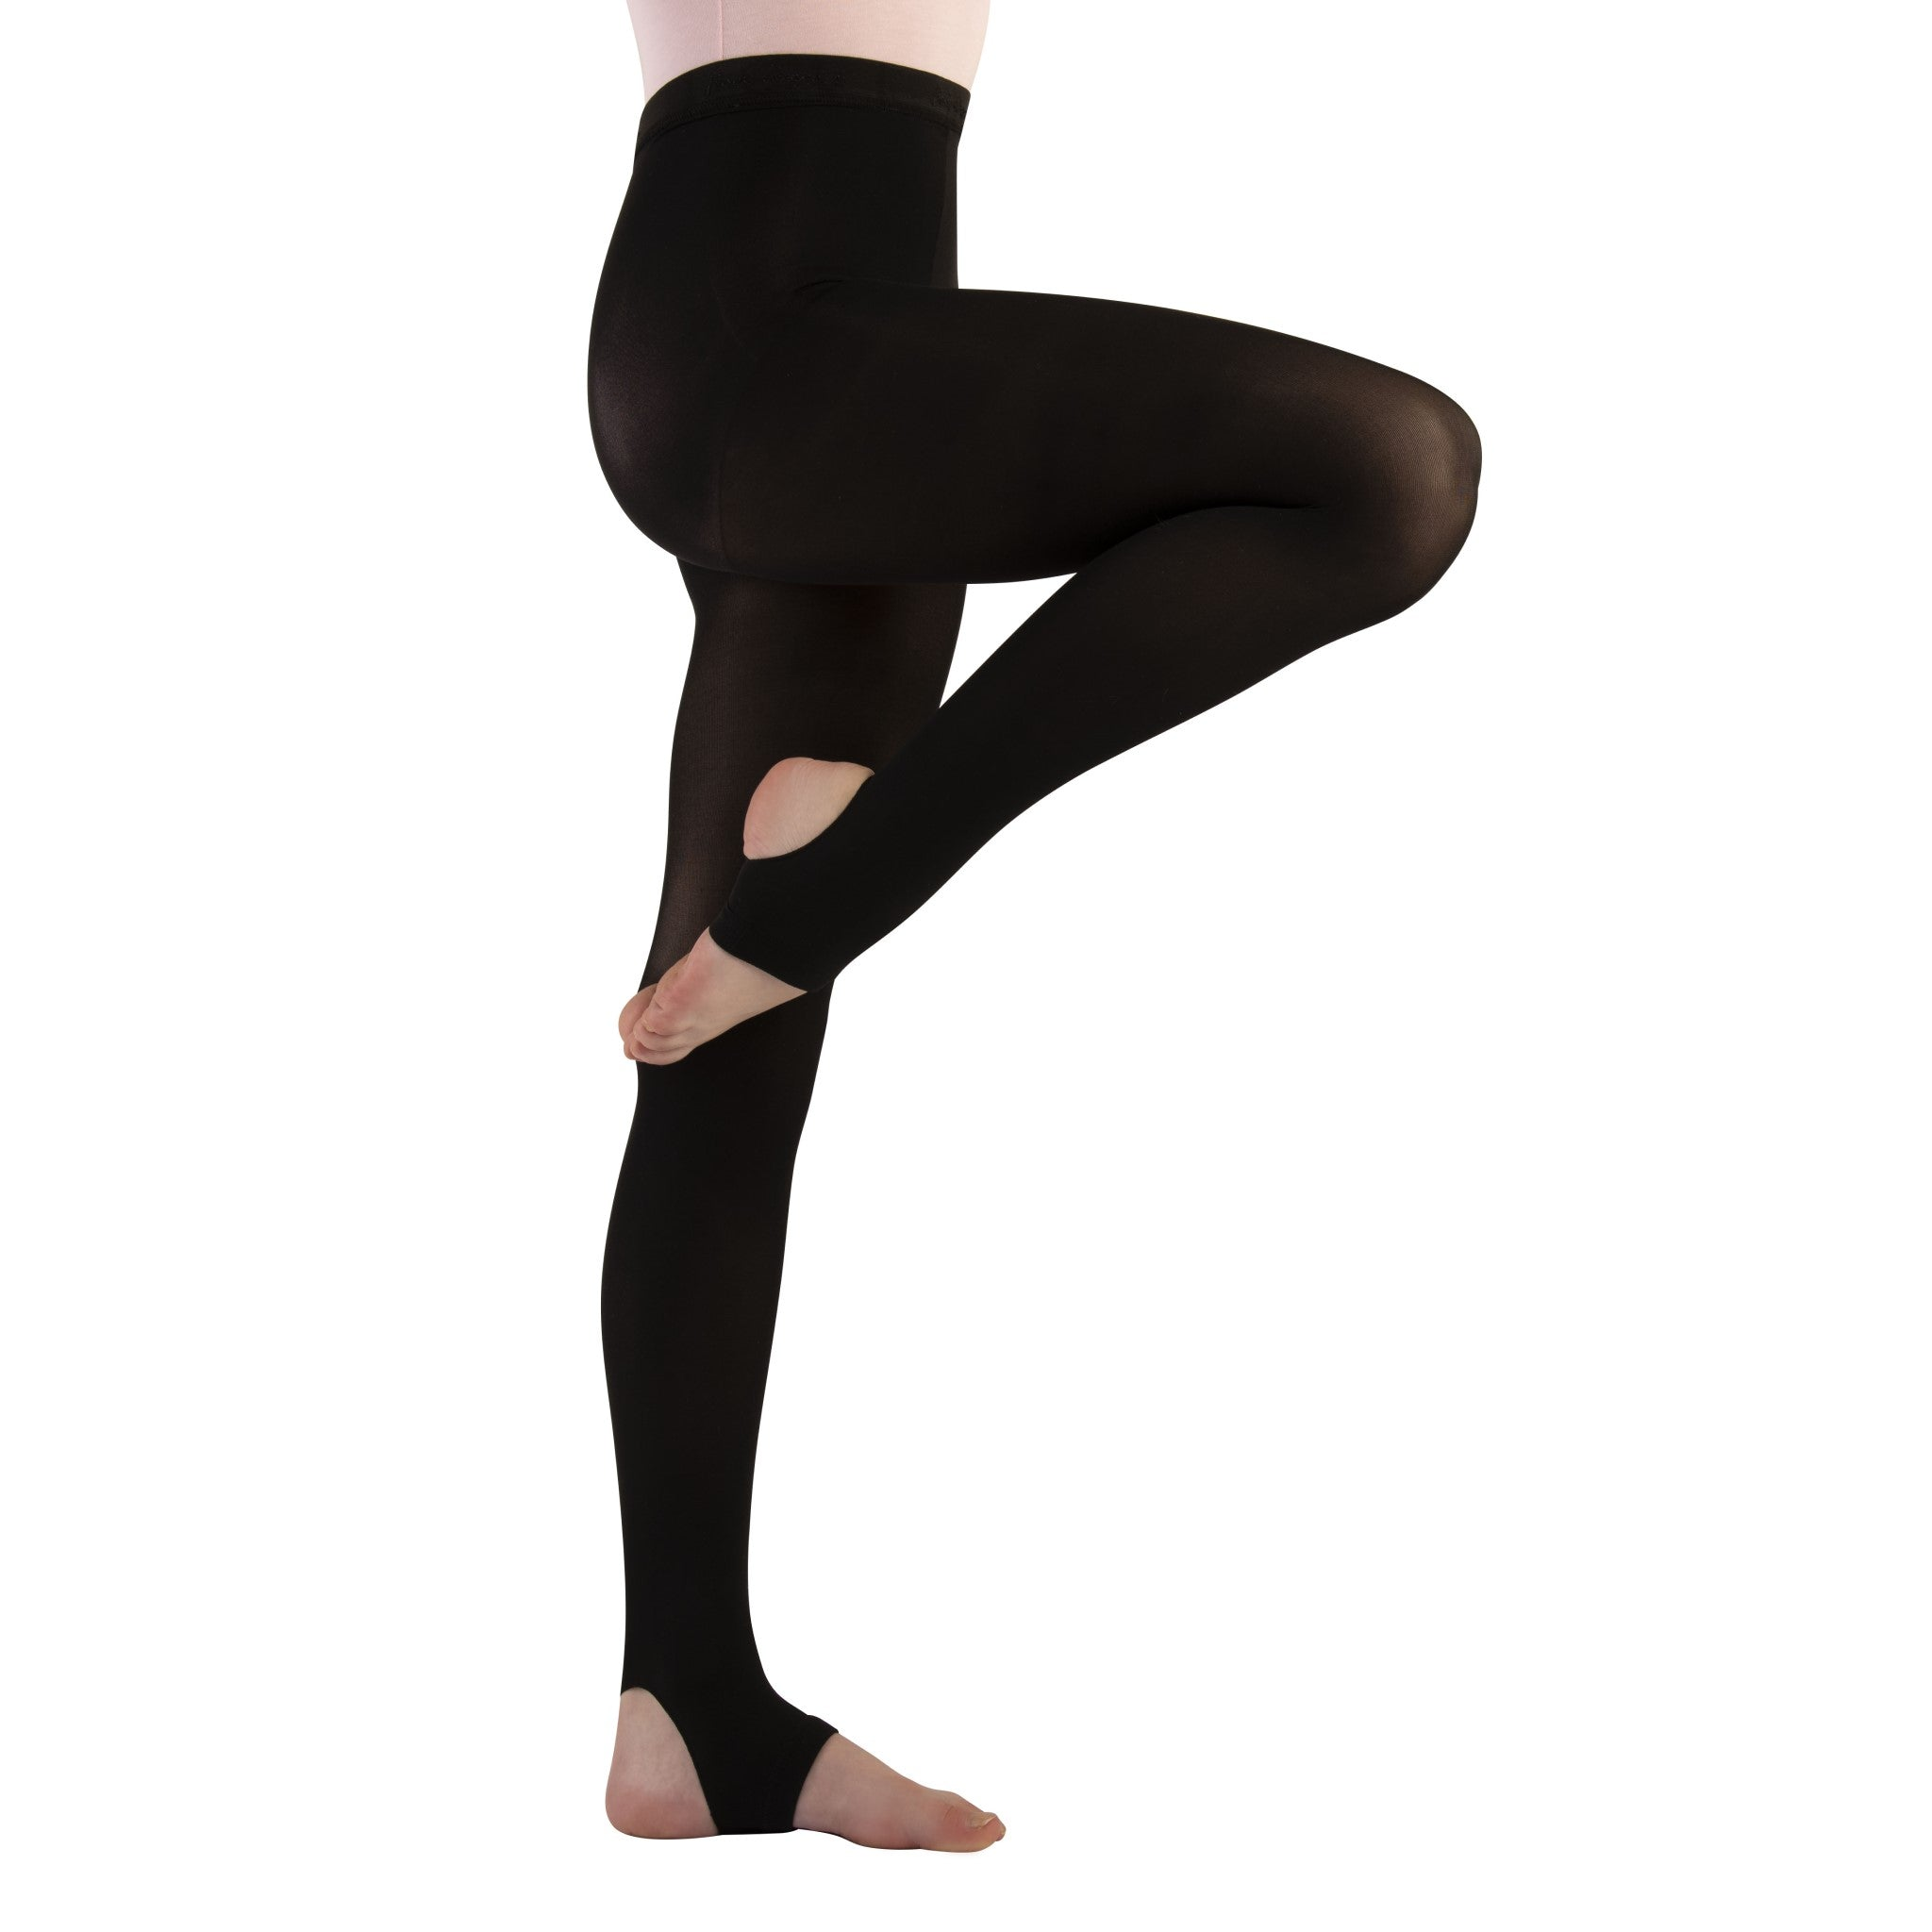 Girls' Body Wrappers Stirrup Tights - C32 - Children Size